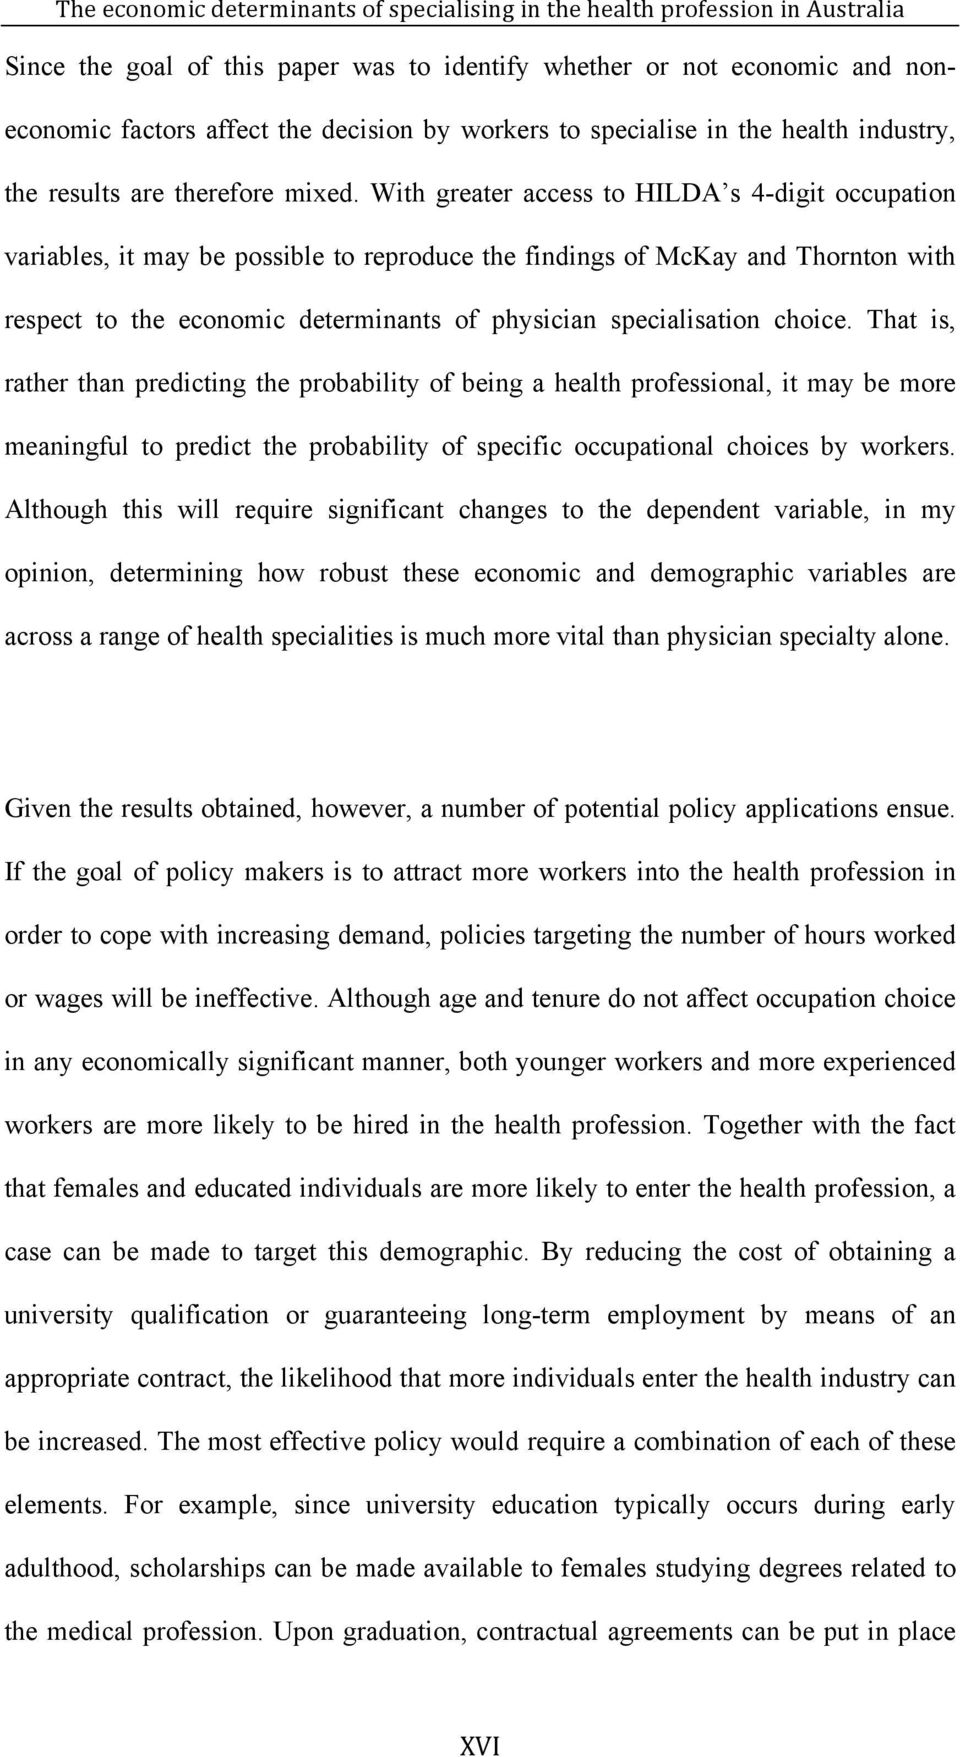 choice. That is, rather than predicting the probability of being a health professional, it may be more meaningful to predict the probability of specific occupational choices by workers.